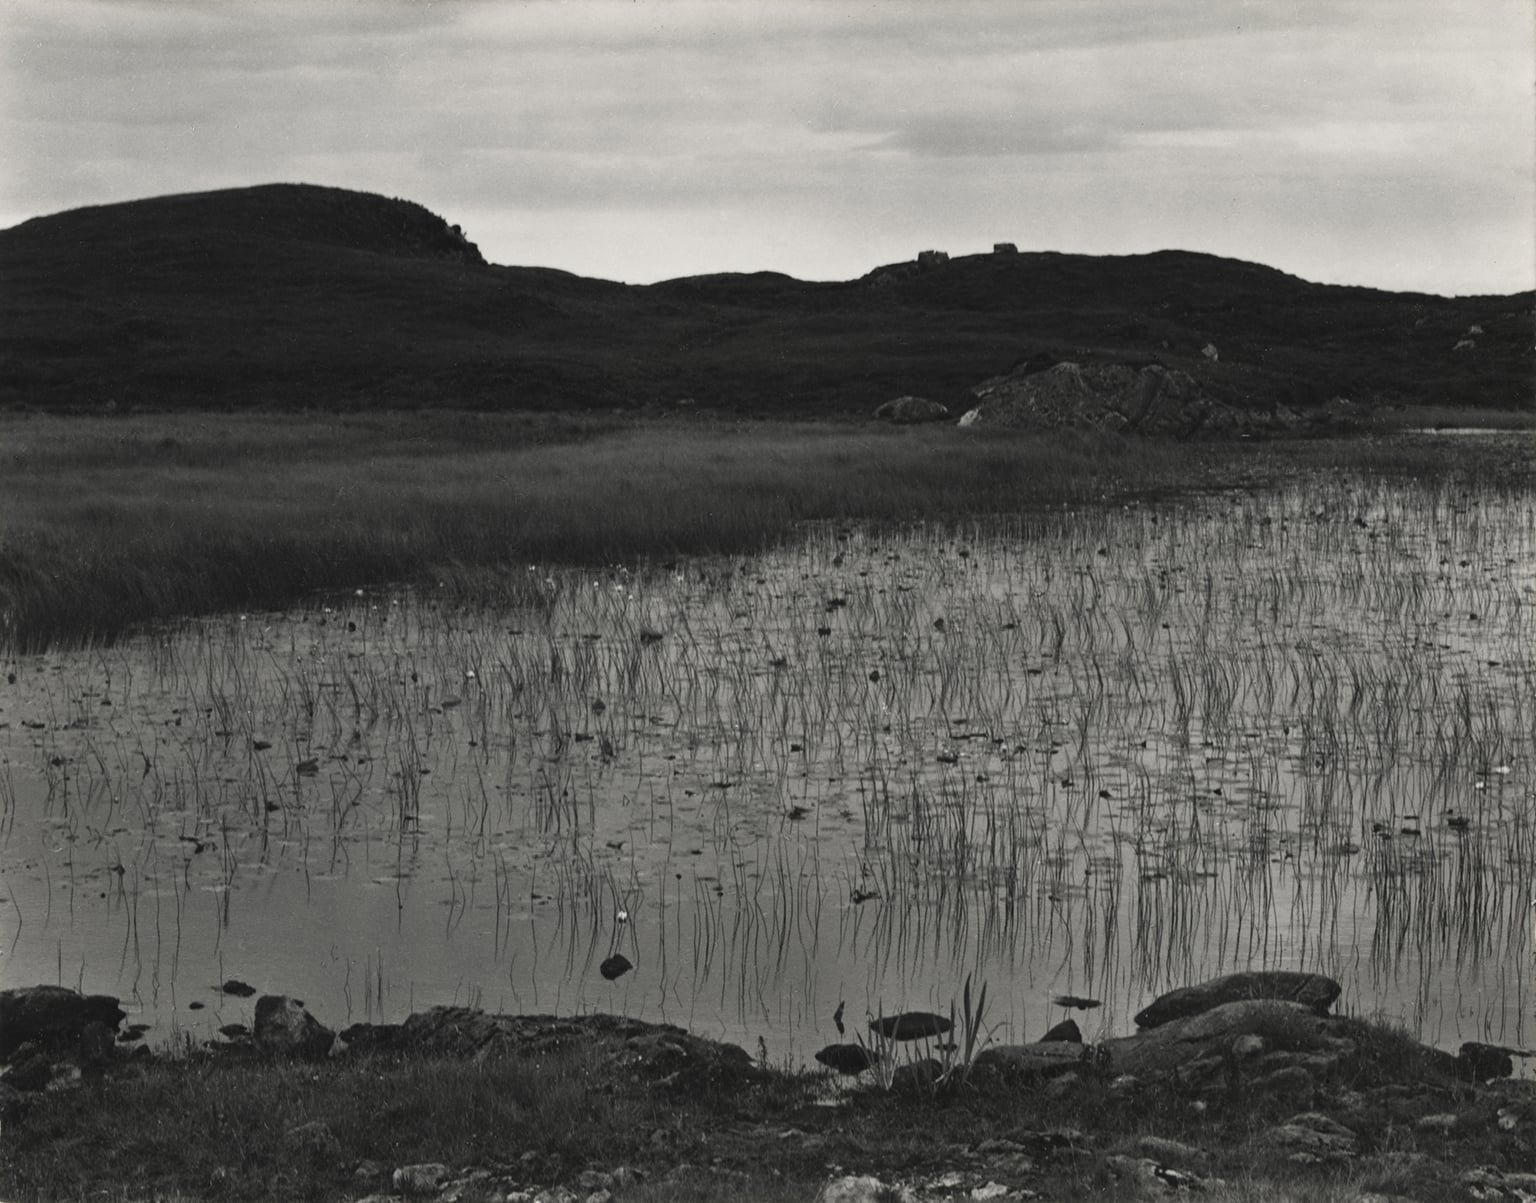 Loch and Lilies, South Uist, Hebrides, 1954 - © Aperture Foundation Inc., Paul Strand Archive